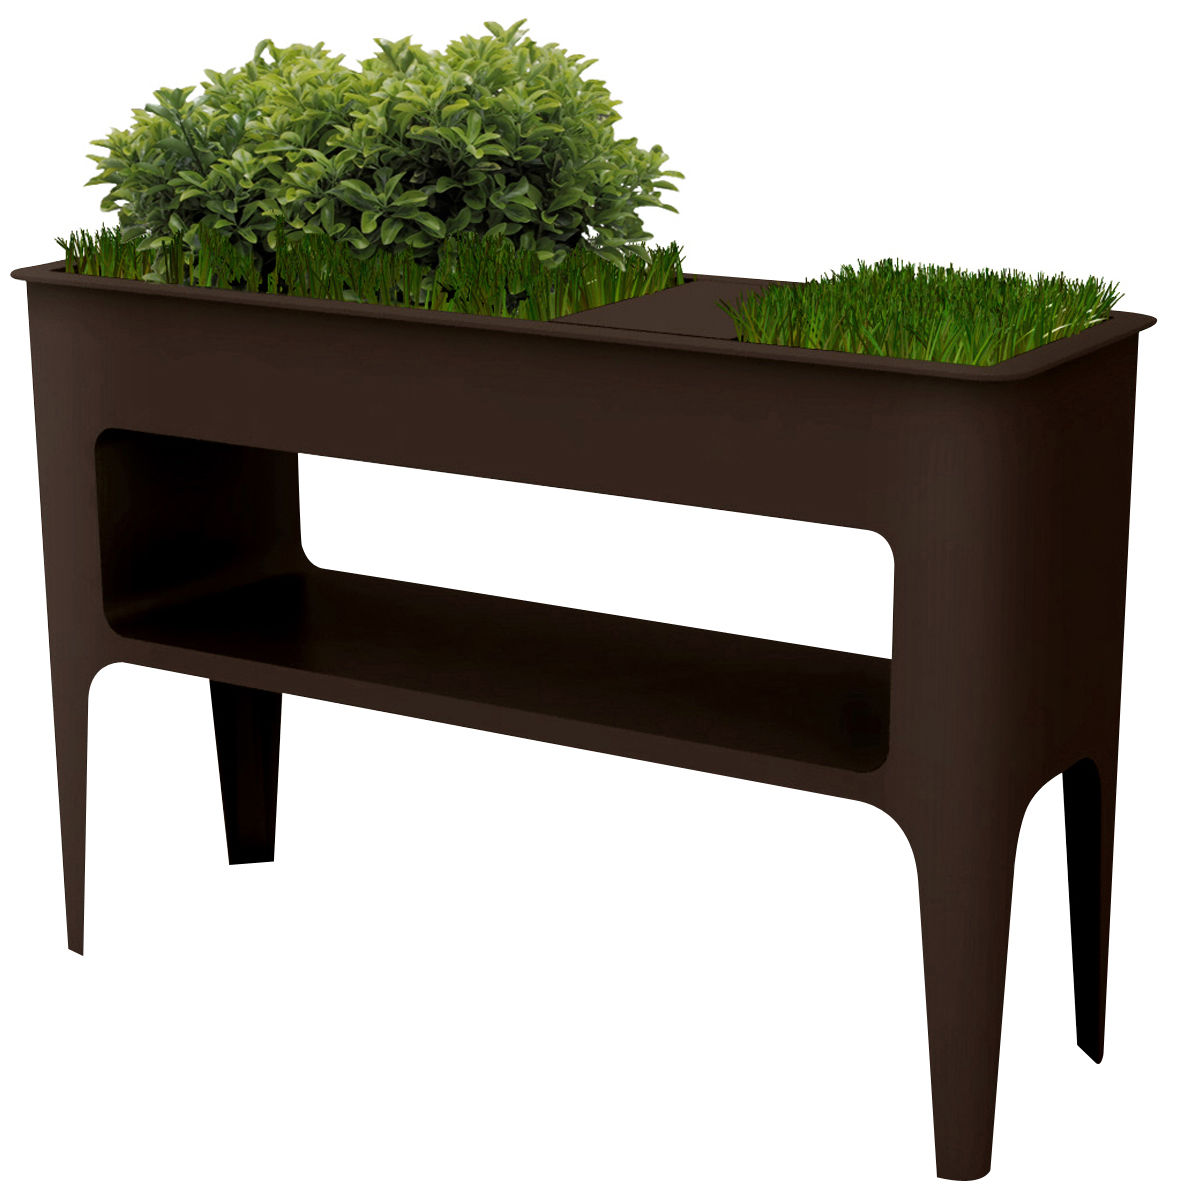 babylone console integrated planter chocolate by compagnie. Black Bedroom Furniture Sets. Home Design Ideas